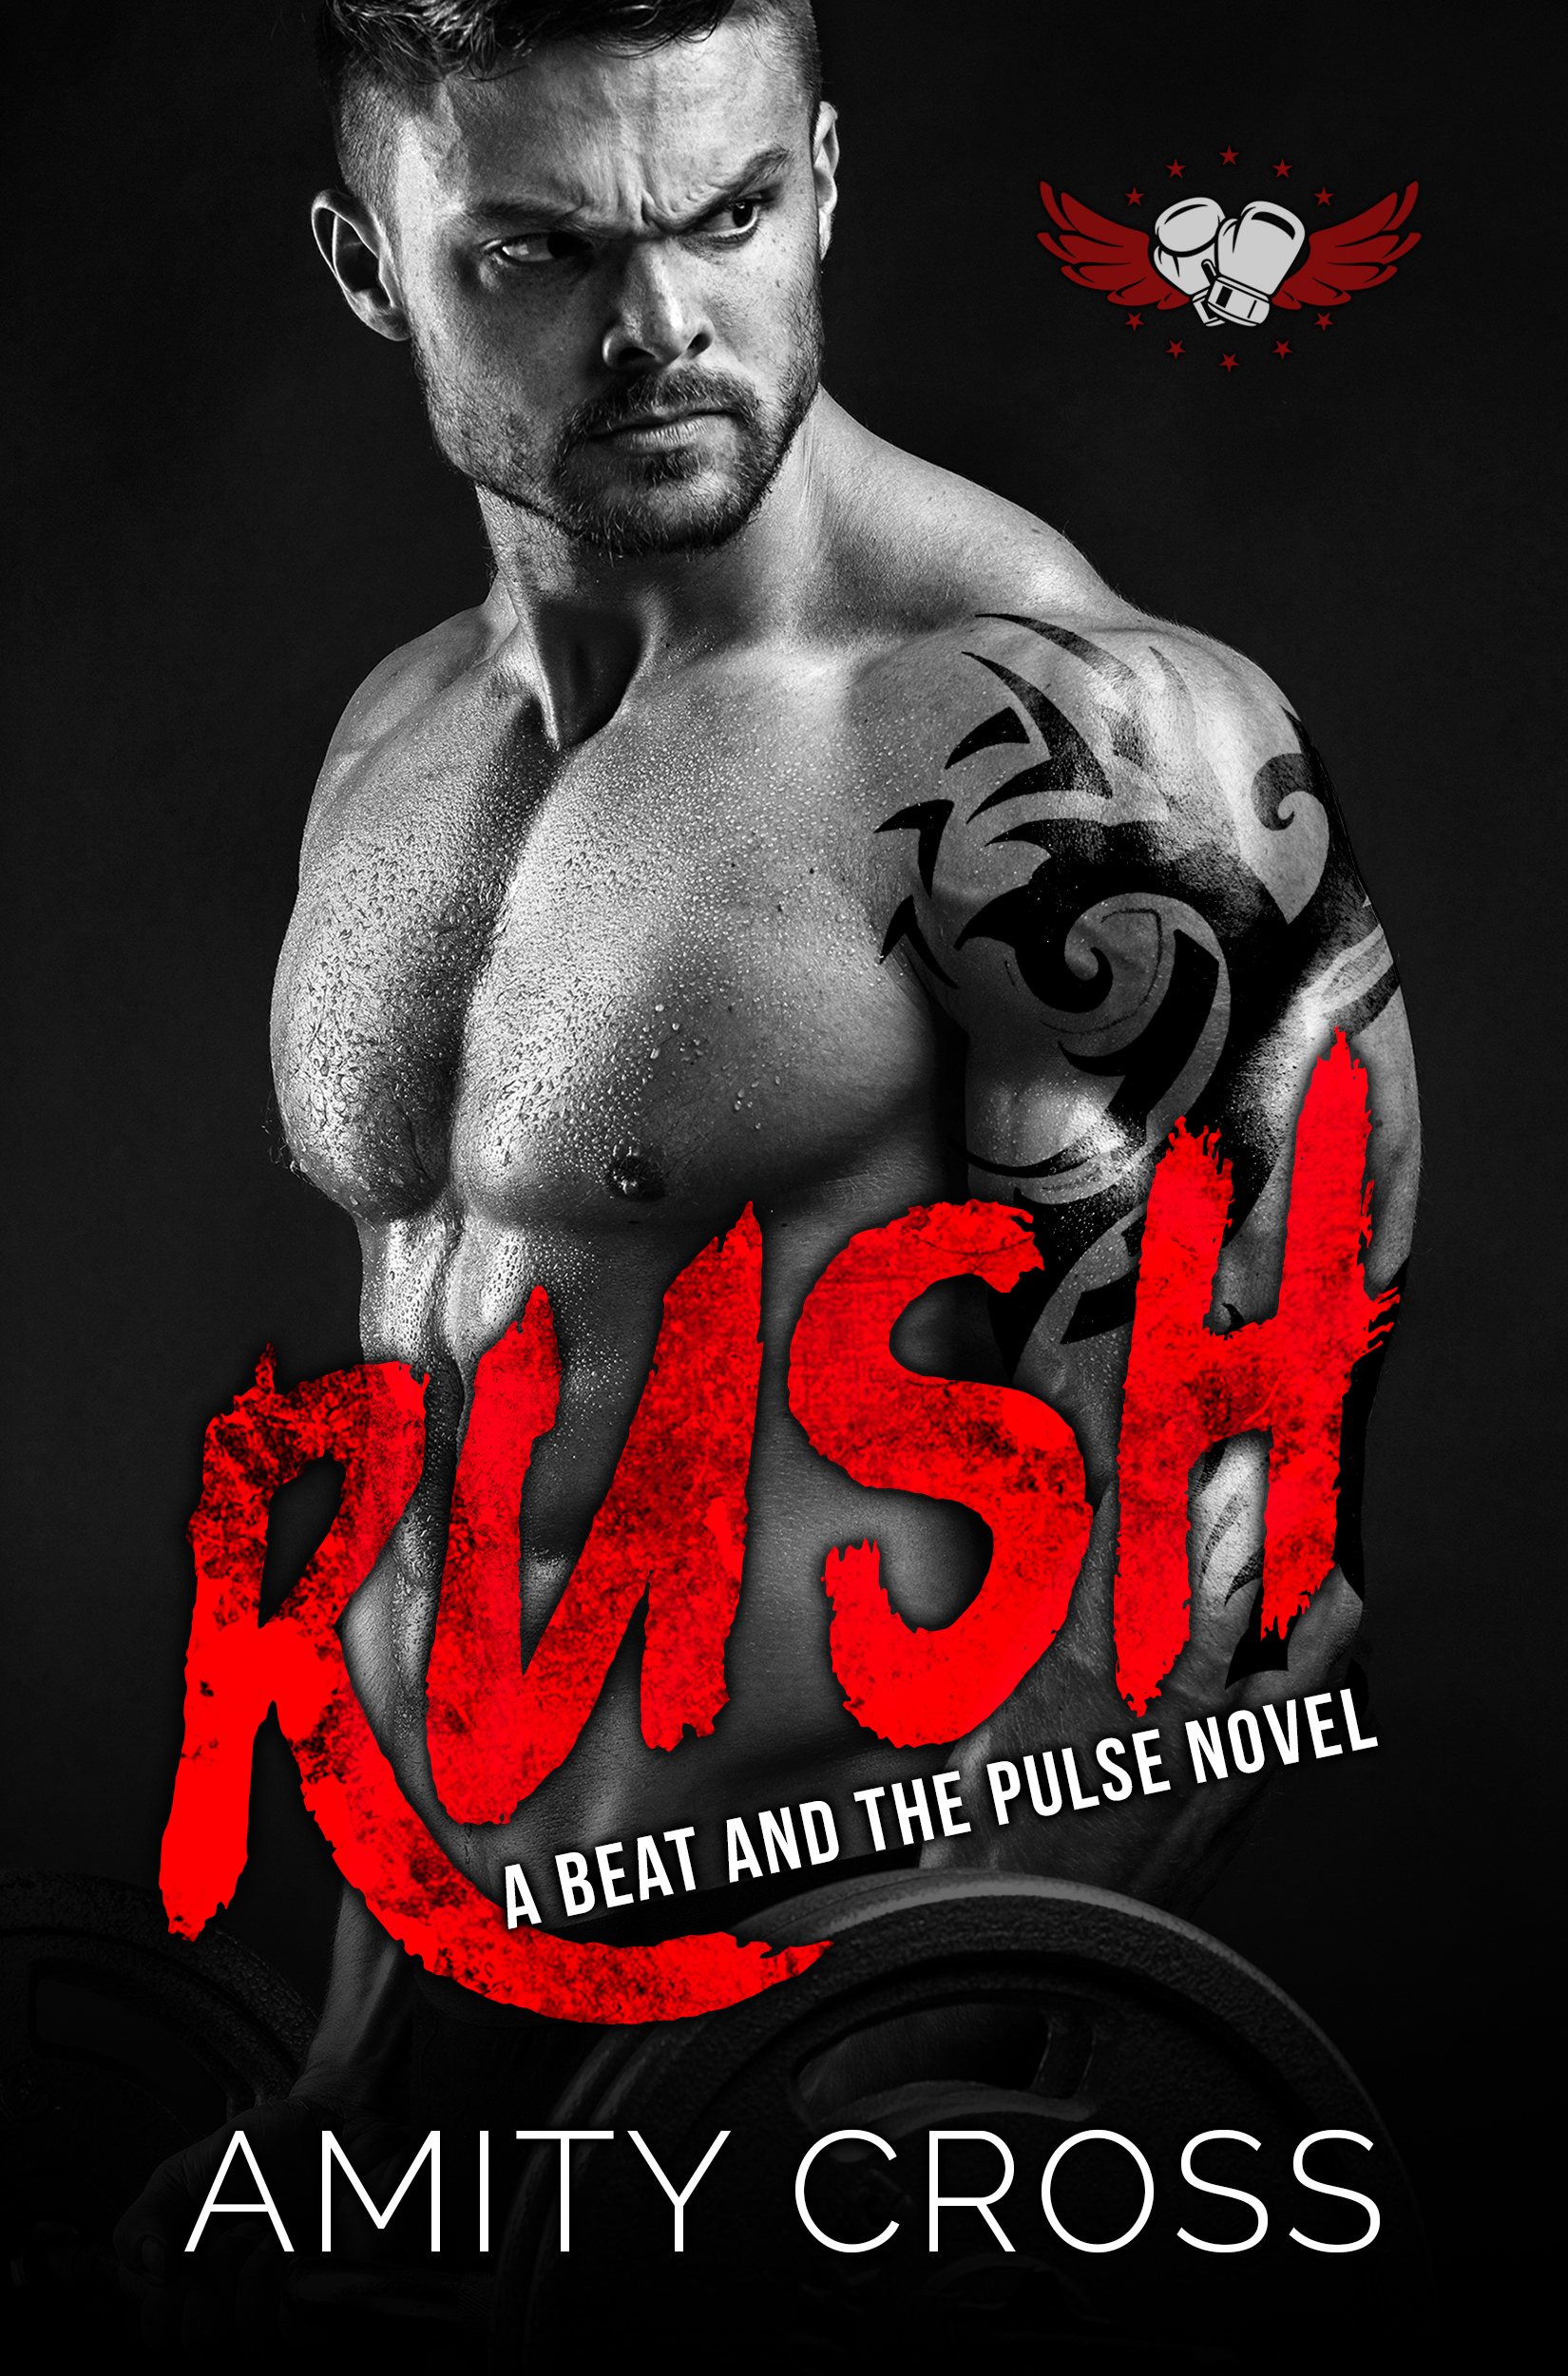 https://www.amitycrosswrites.com/books/the-beat-and-the-pulse/